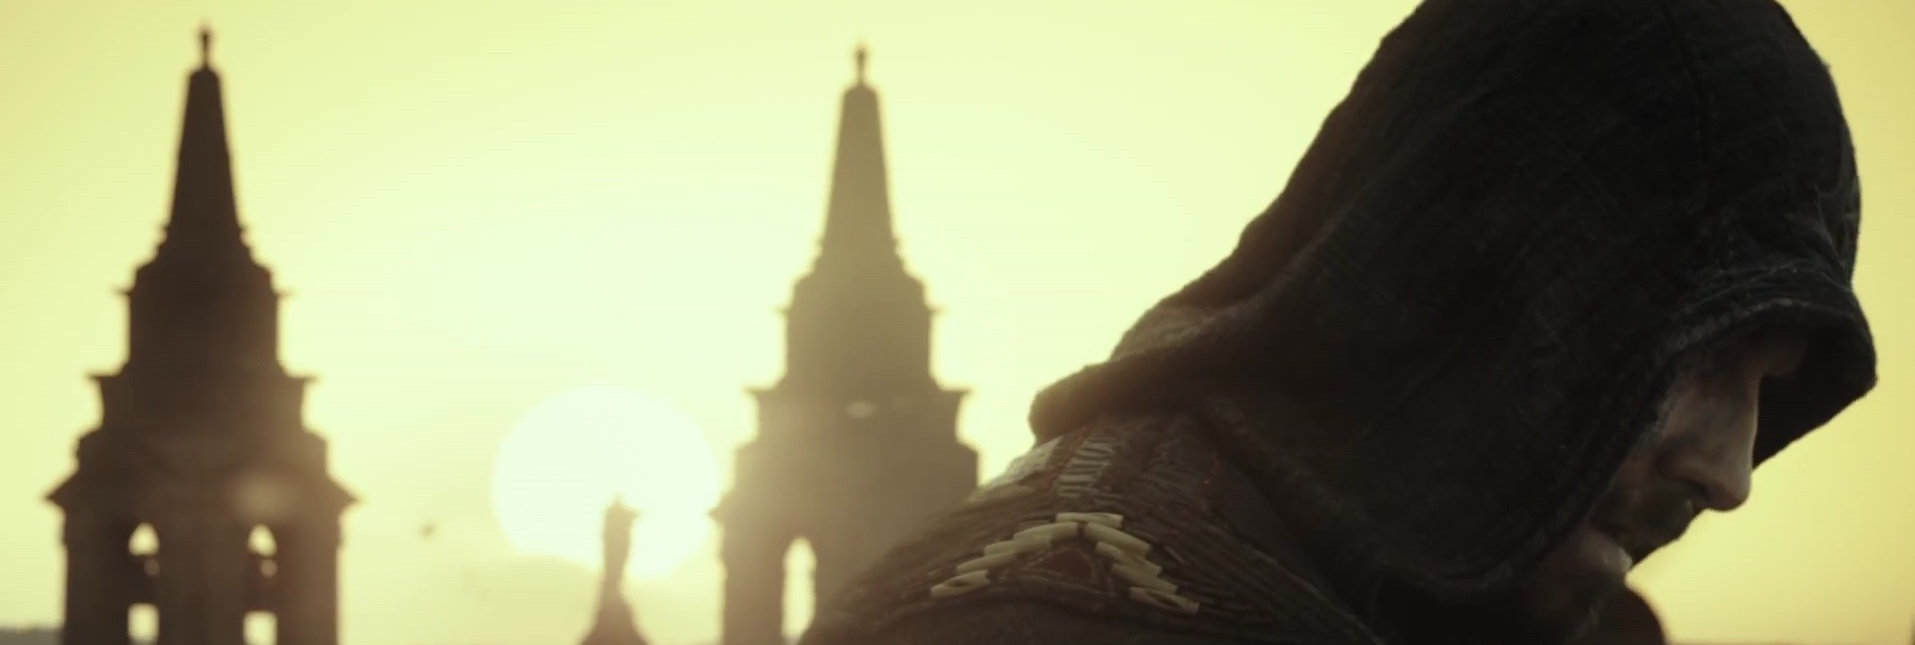 Assassins Creed, video game into movie